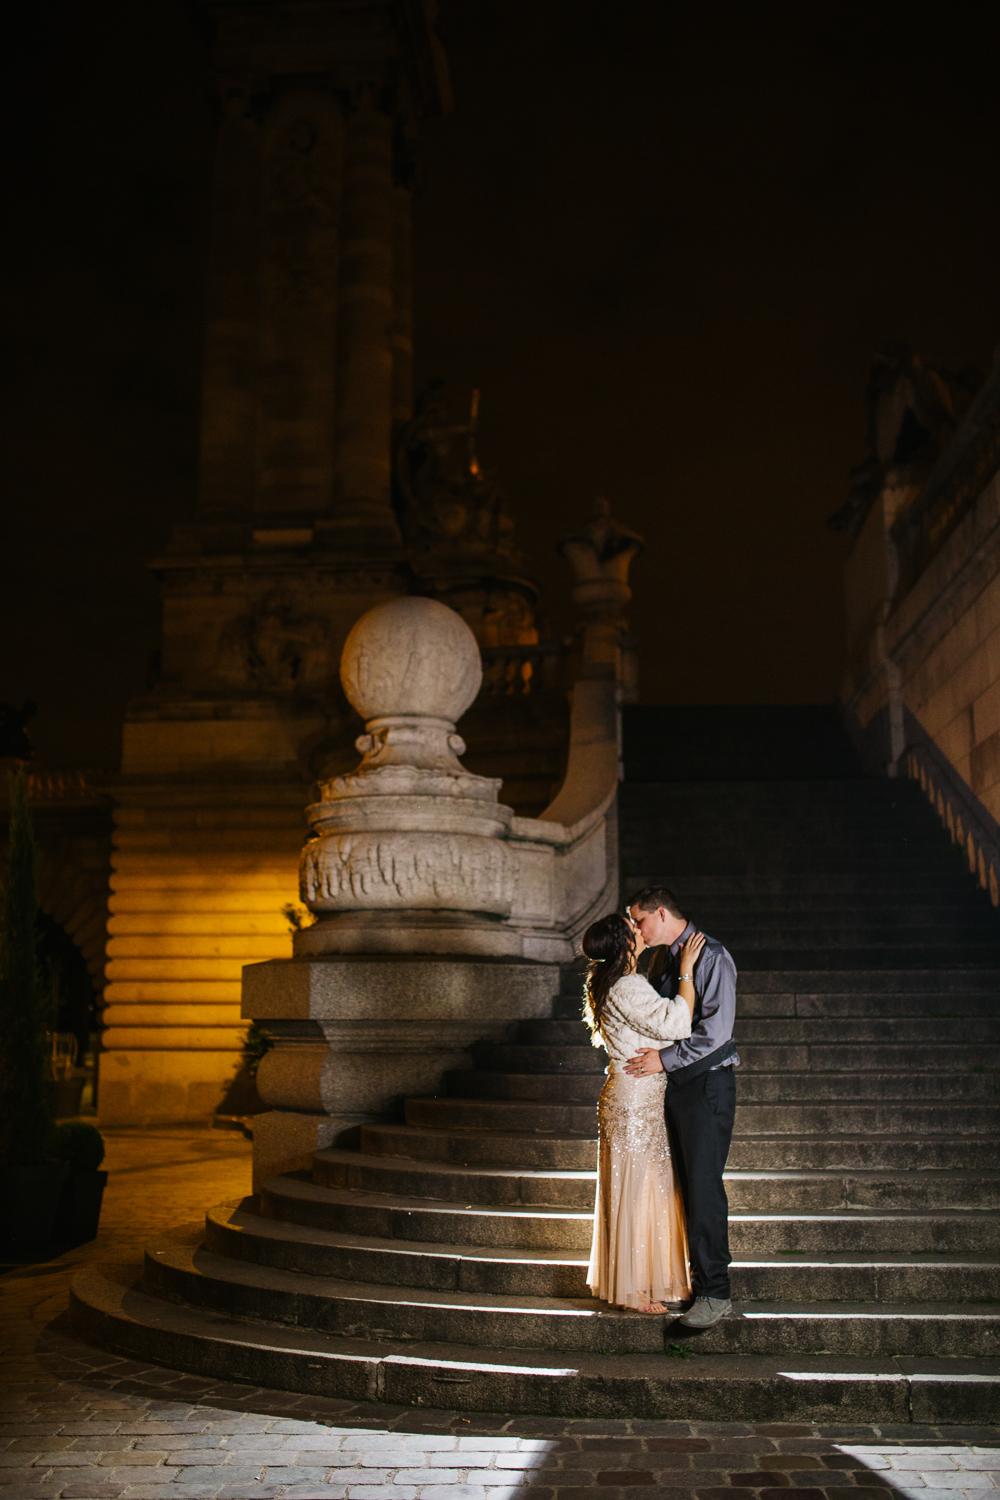 Chico-Wedding-Photography-Ranalla-Photo-Films-Wedding-Video-Wedding-Photographer-Destination-wedding-photographer-venice-wedding-paris-wedding-paris-night-eiffel-tower-12.jpg